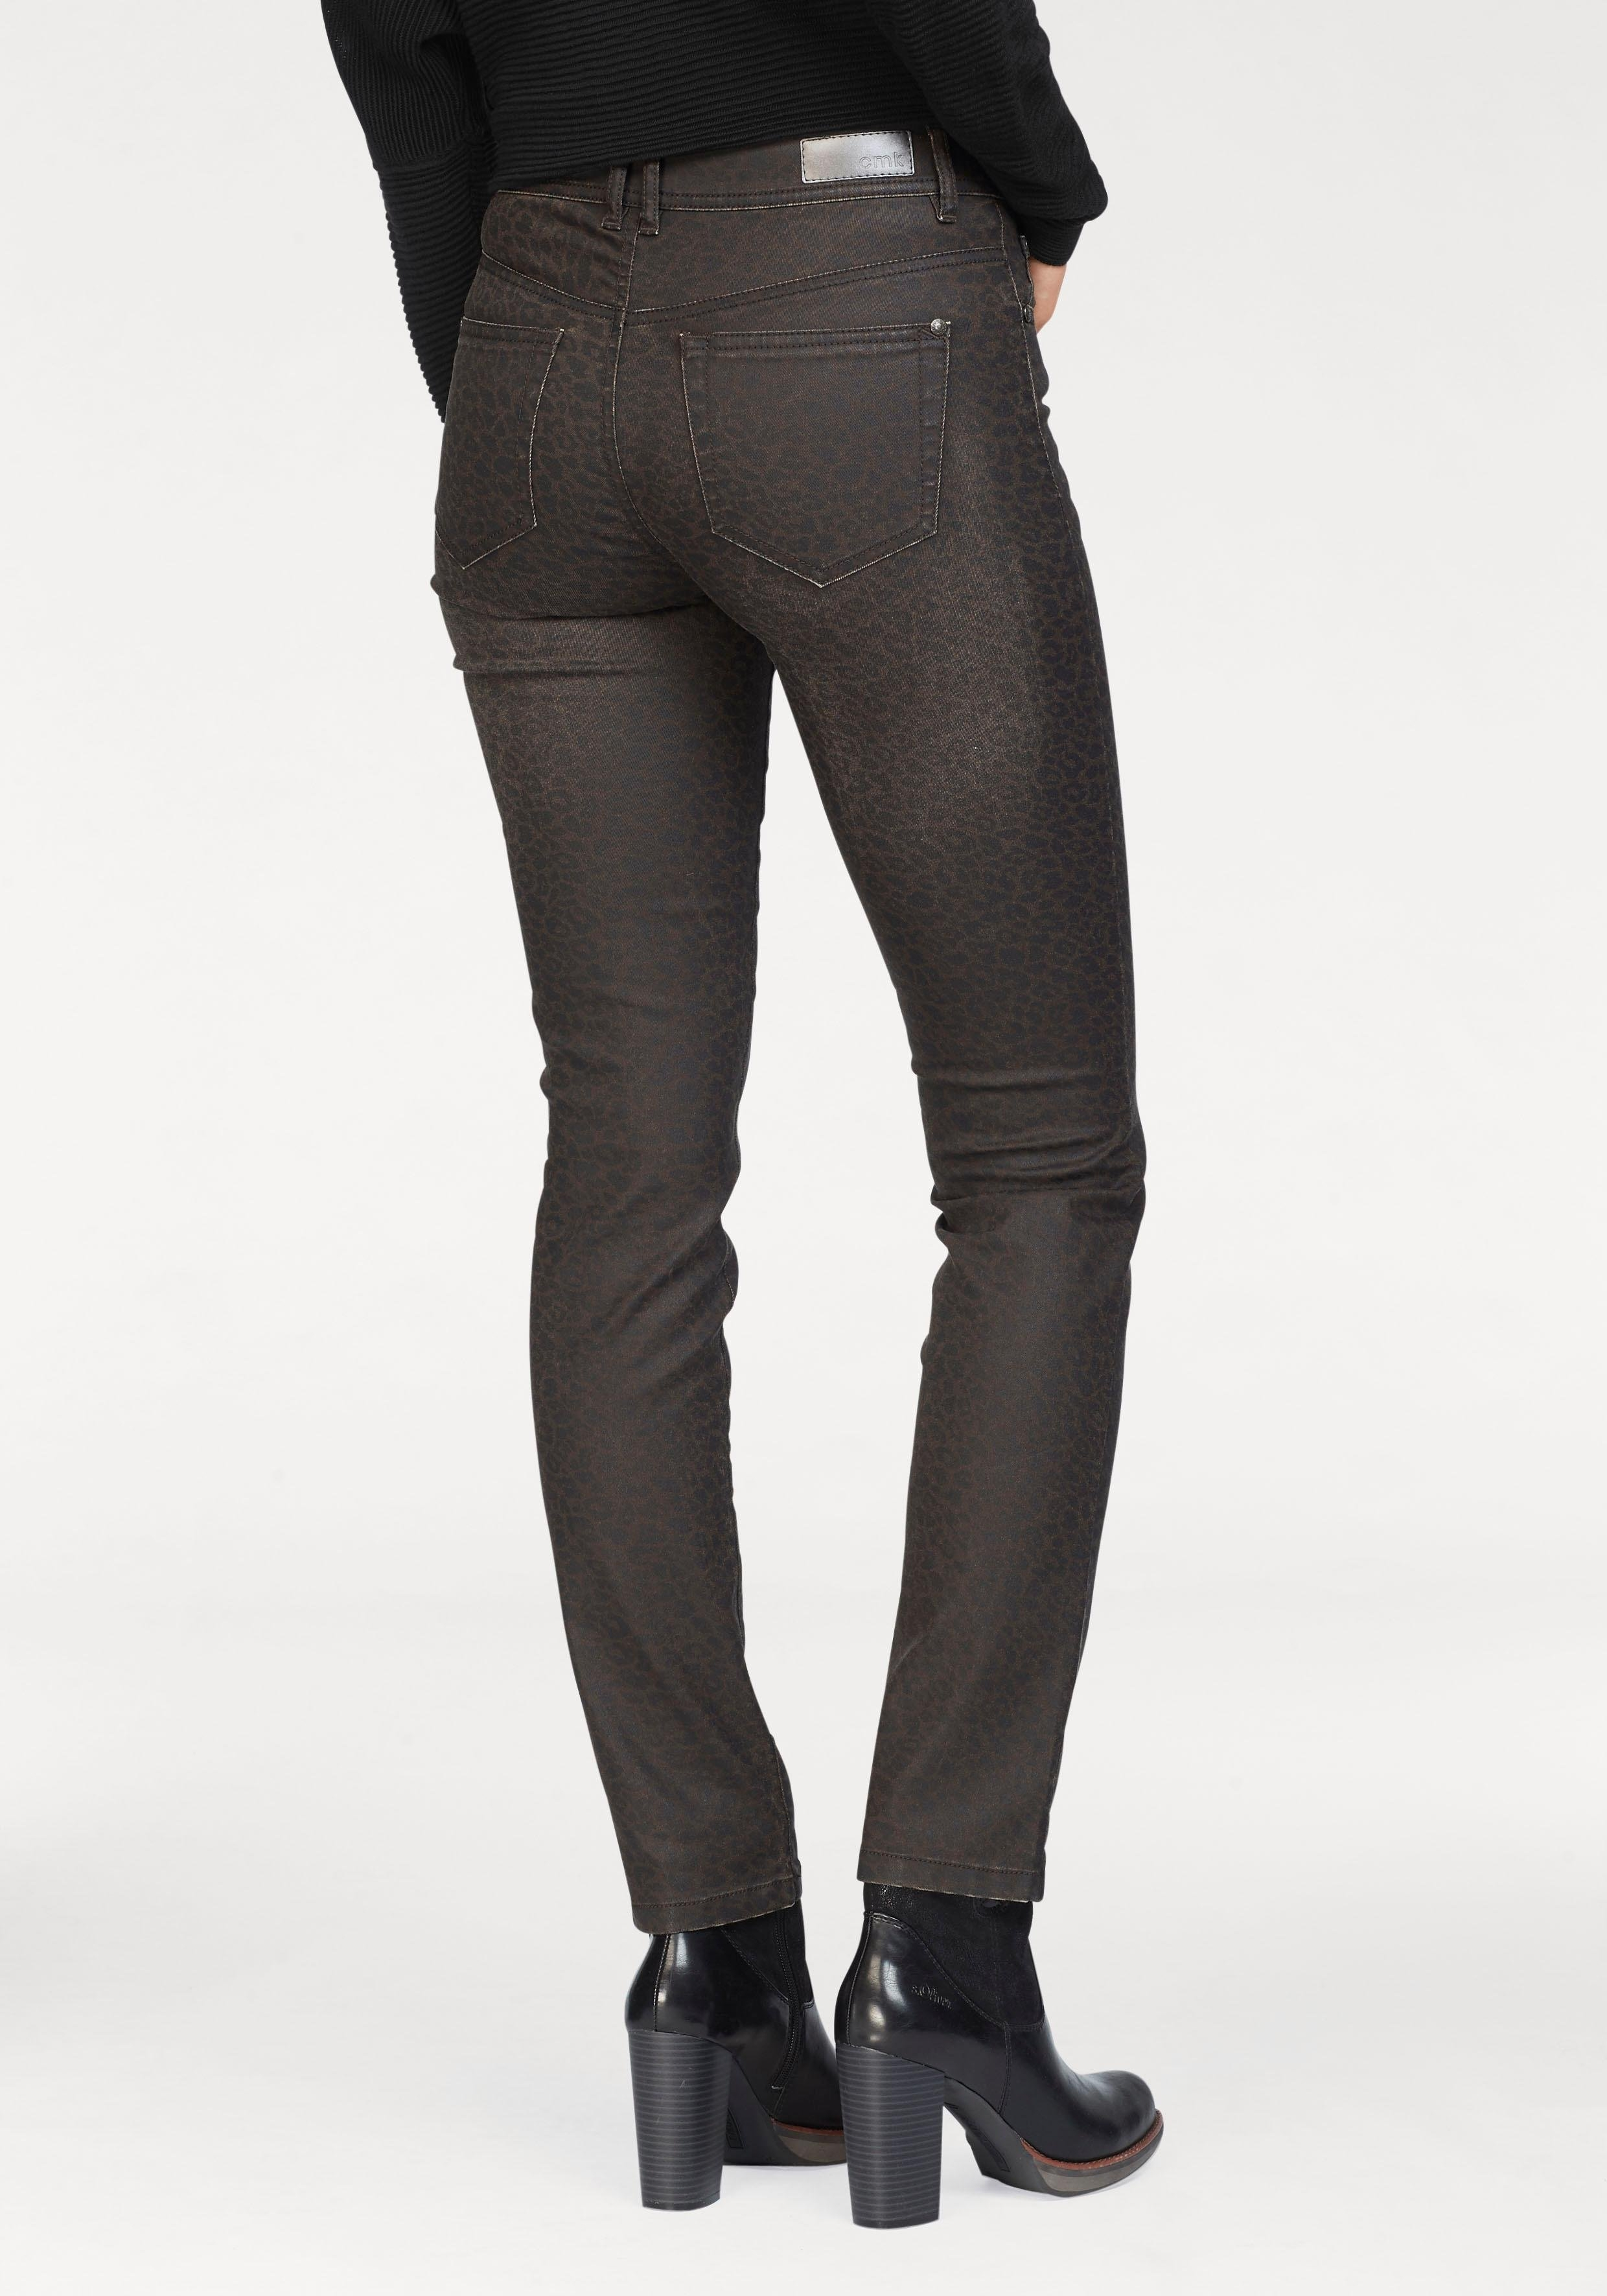 Stretch Richy Shop In Online De Jeanscamouflage Leo thdsQr